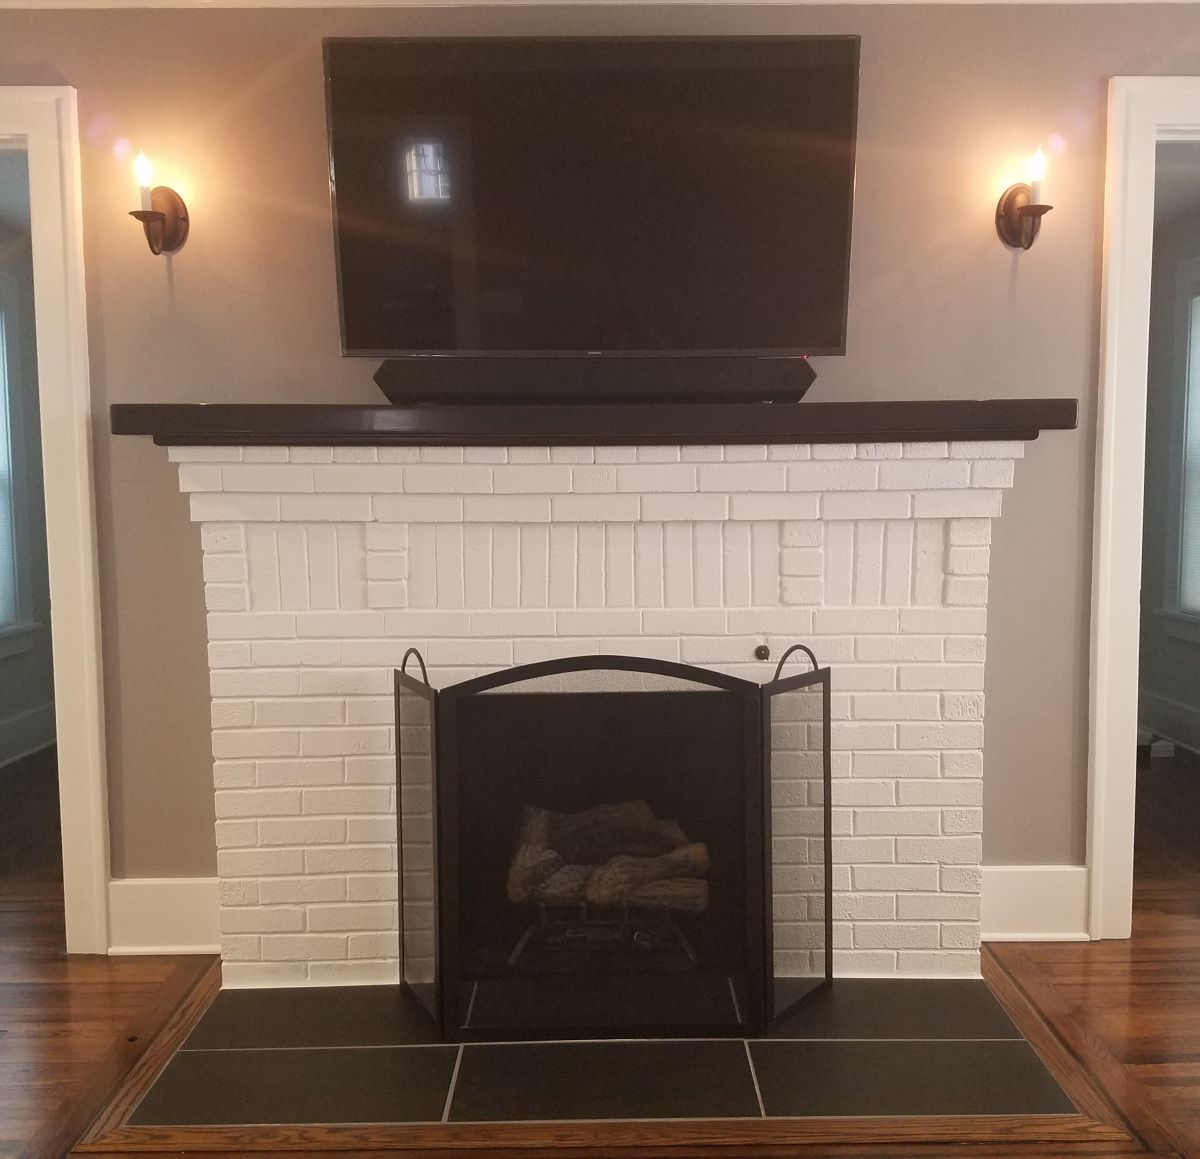 Refinished Fireplace White With Black Tile Hearth Lighting On Either Side Tv Above